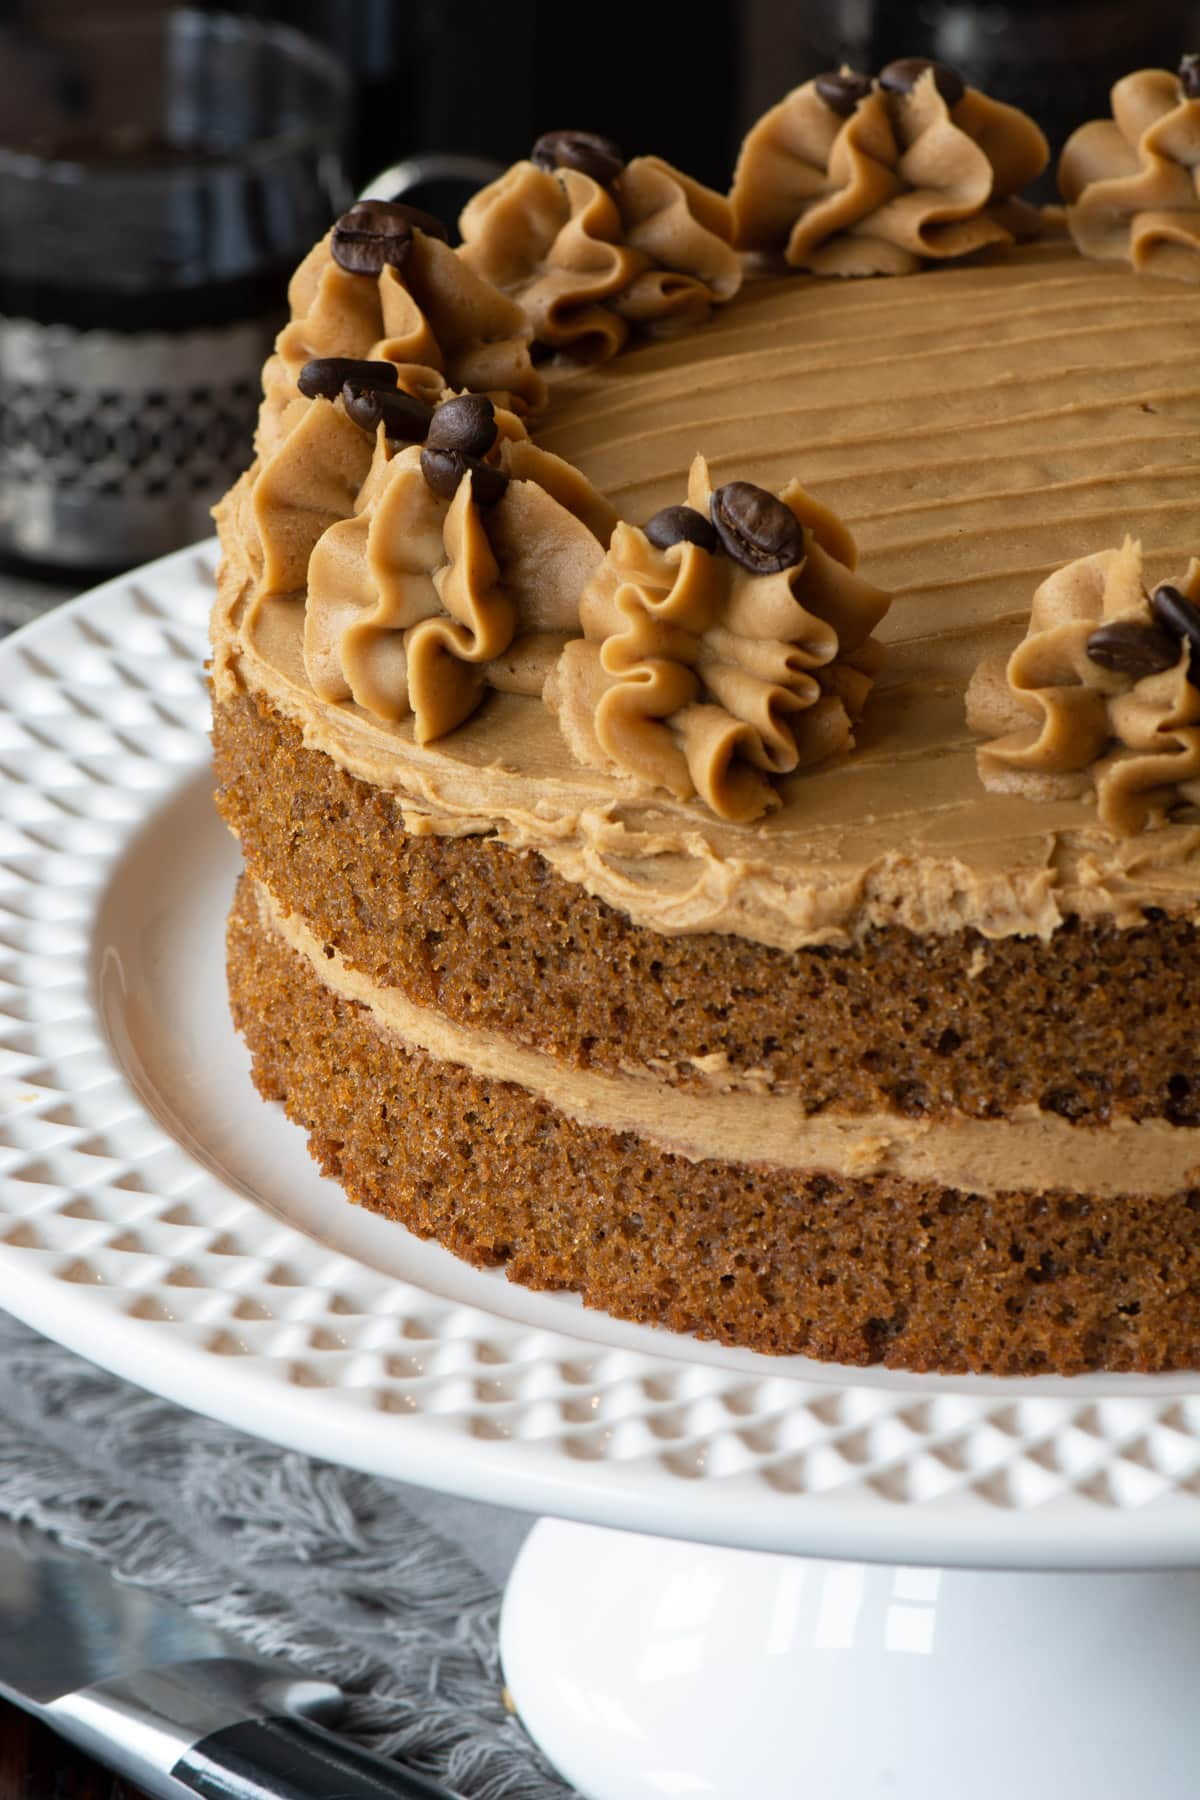 Easy Coffee Cake - A delicious all-in-one coffee sponge topped with smooth coffee buttercream. Simple to make and packed full of flavour. PLUS - How to make this cake in any size of round, square or rectangular tin.